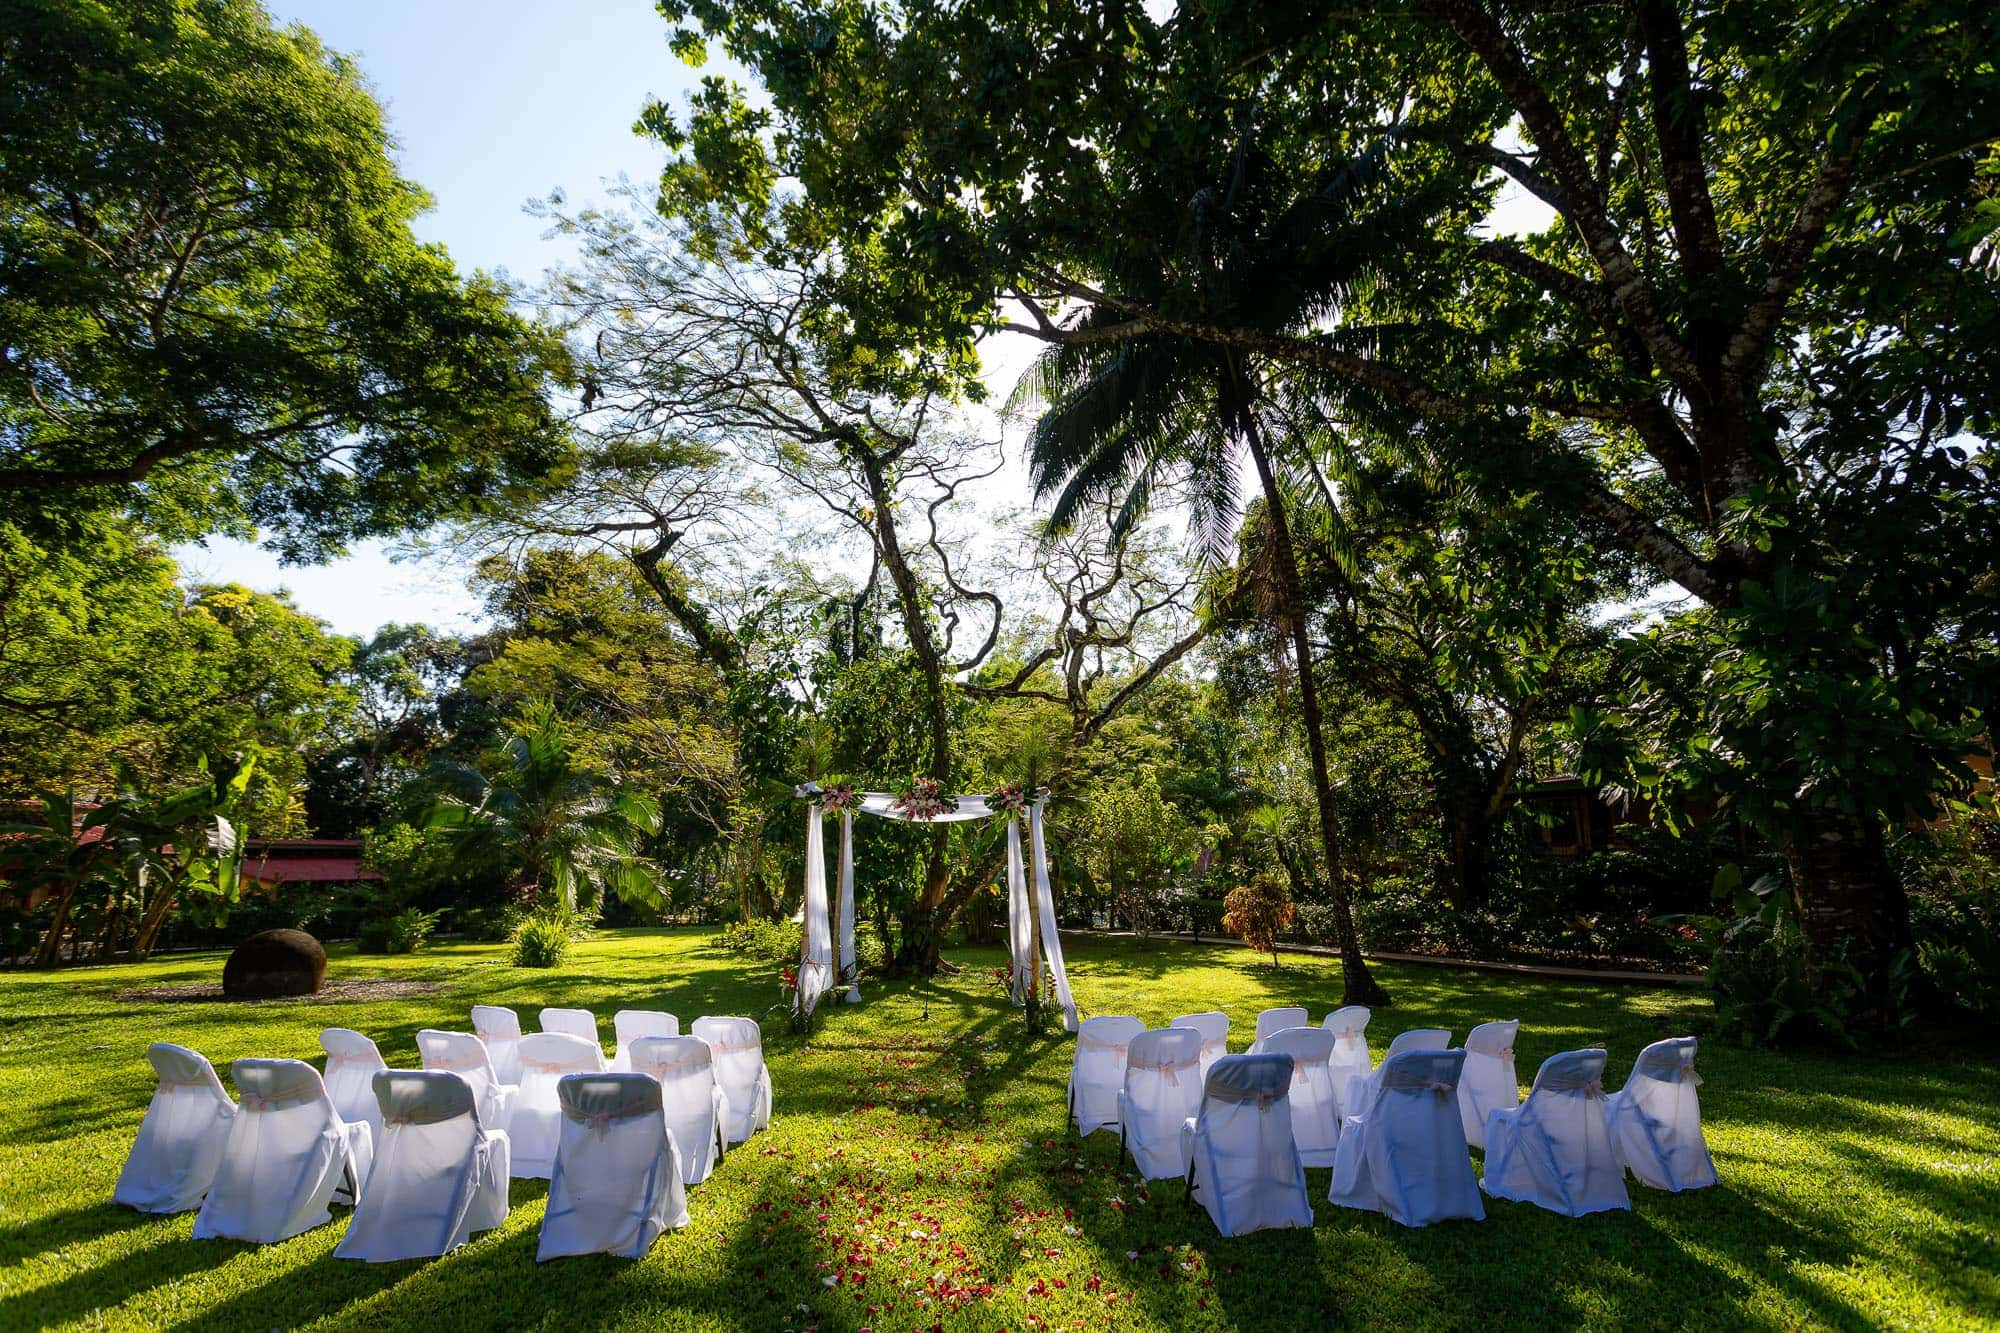 The garden ceremony site for tying the knot in Costa Rica